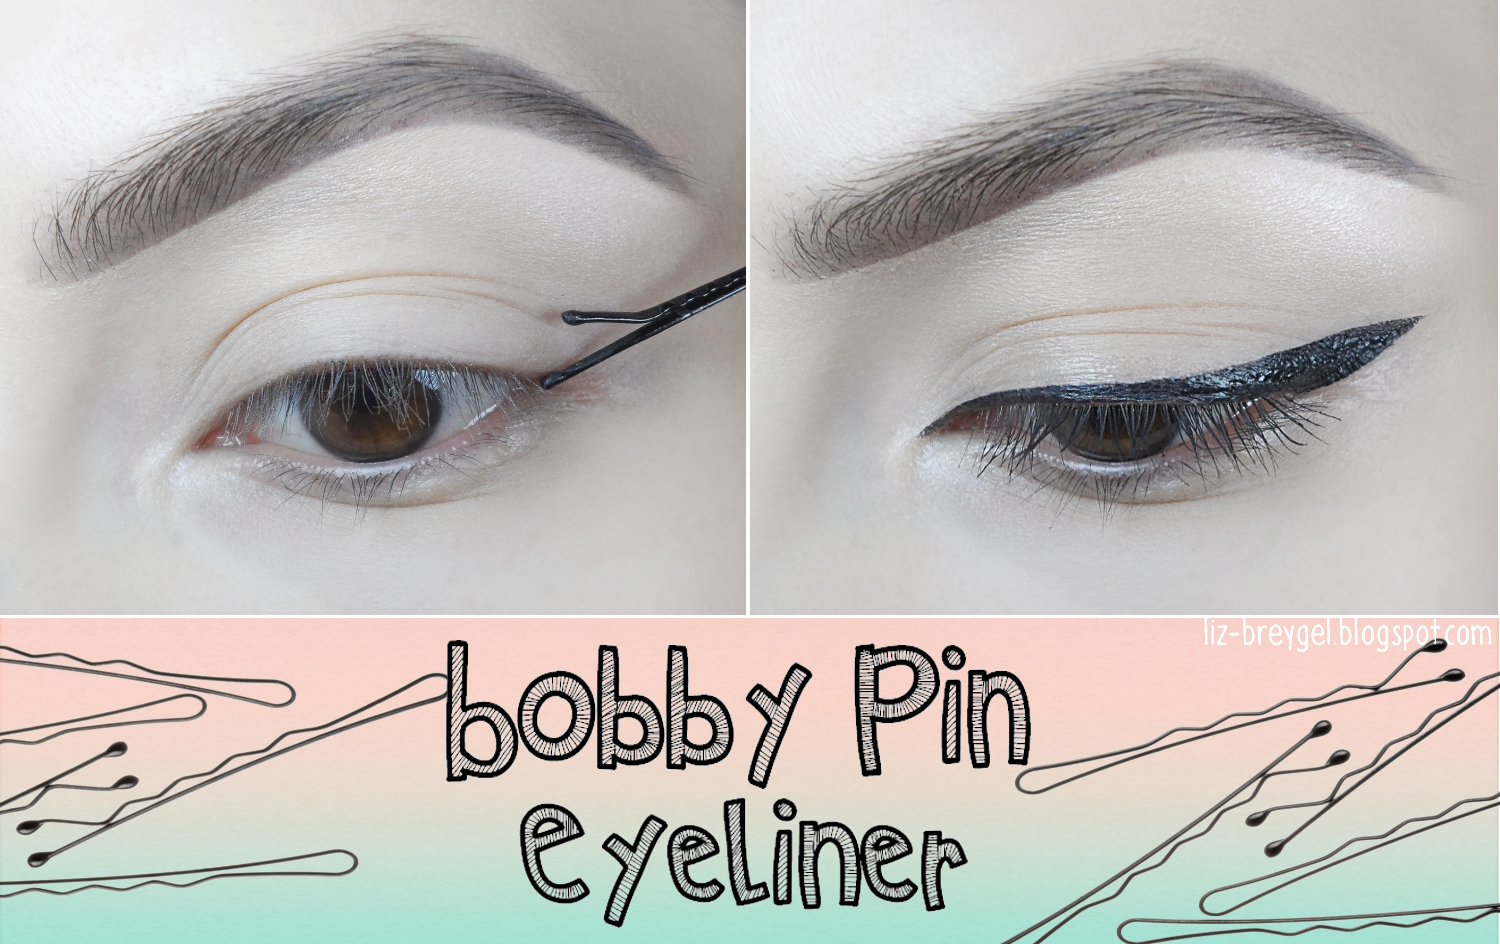 liz breygel makeup eyeliner styles bobby pin makeup tutorial step by step pictures